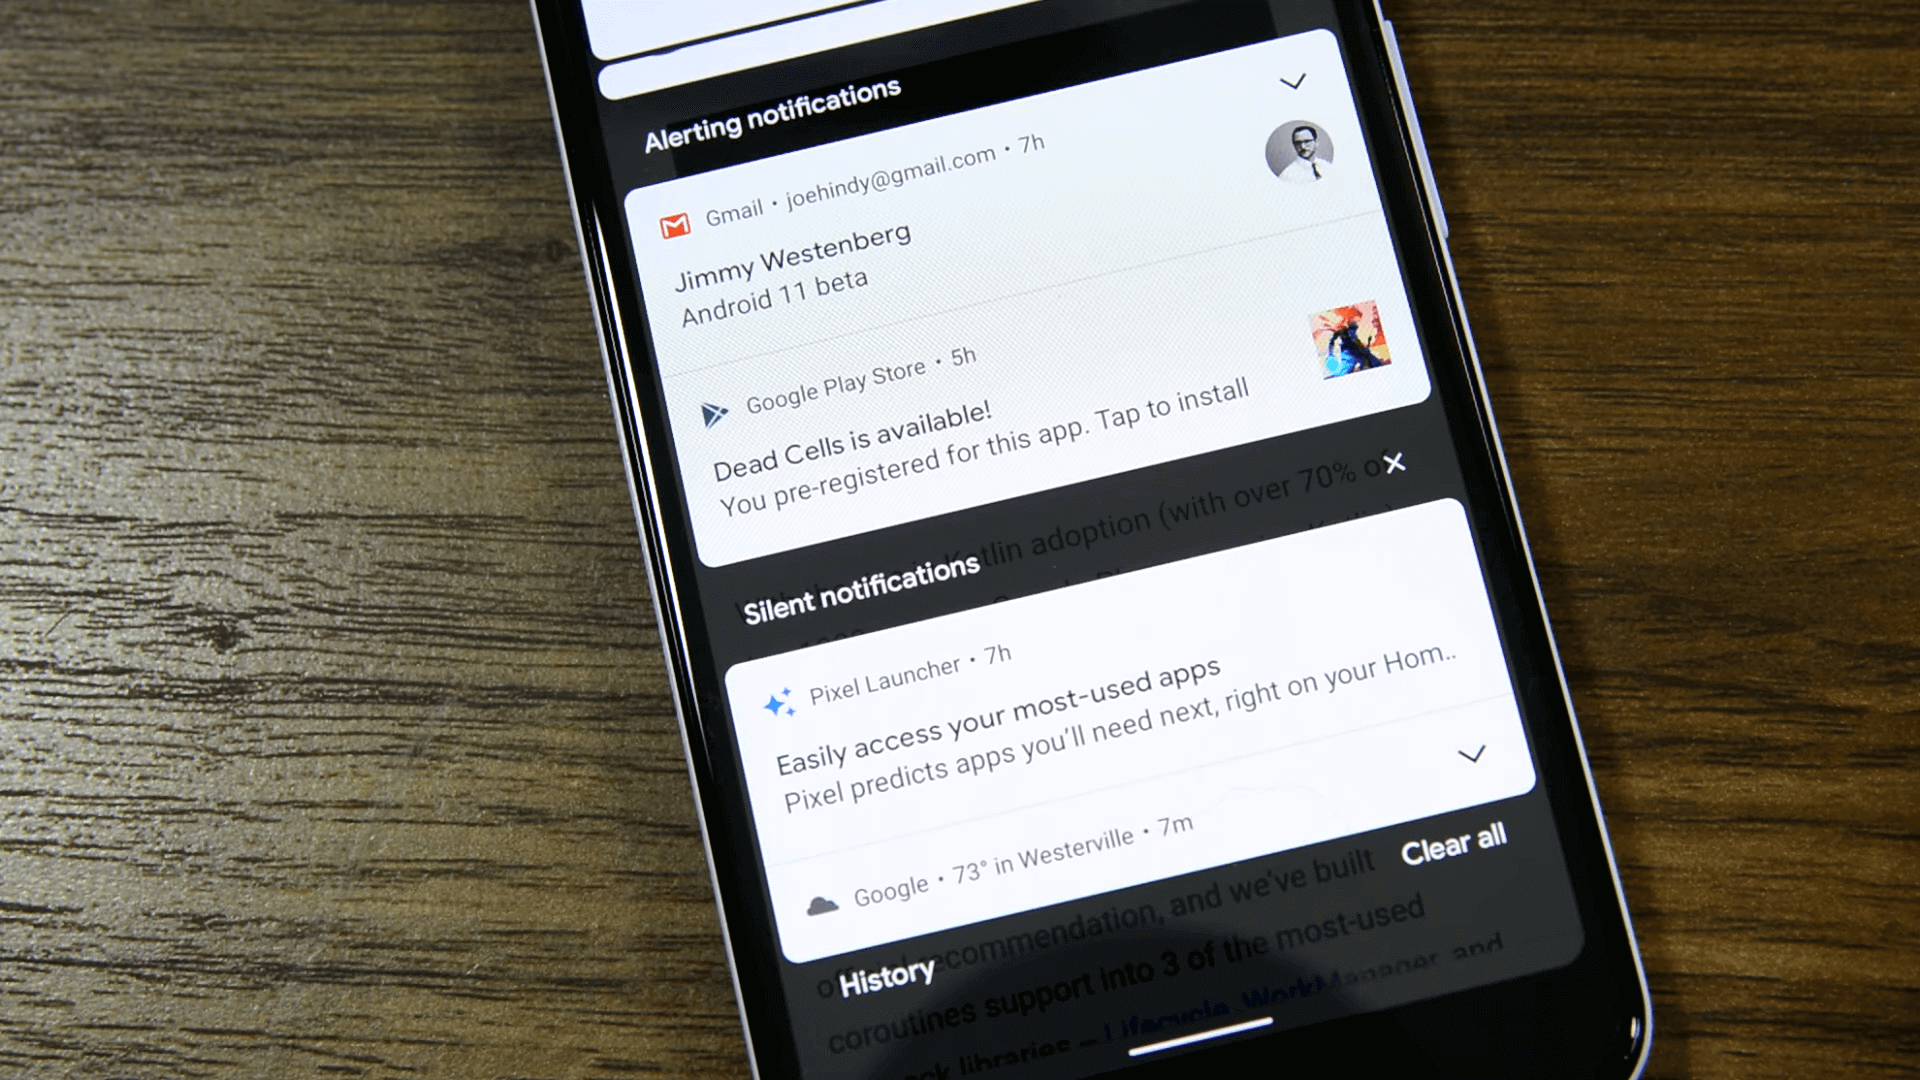 Notification functions organized by Android 11s